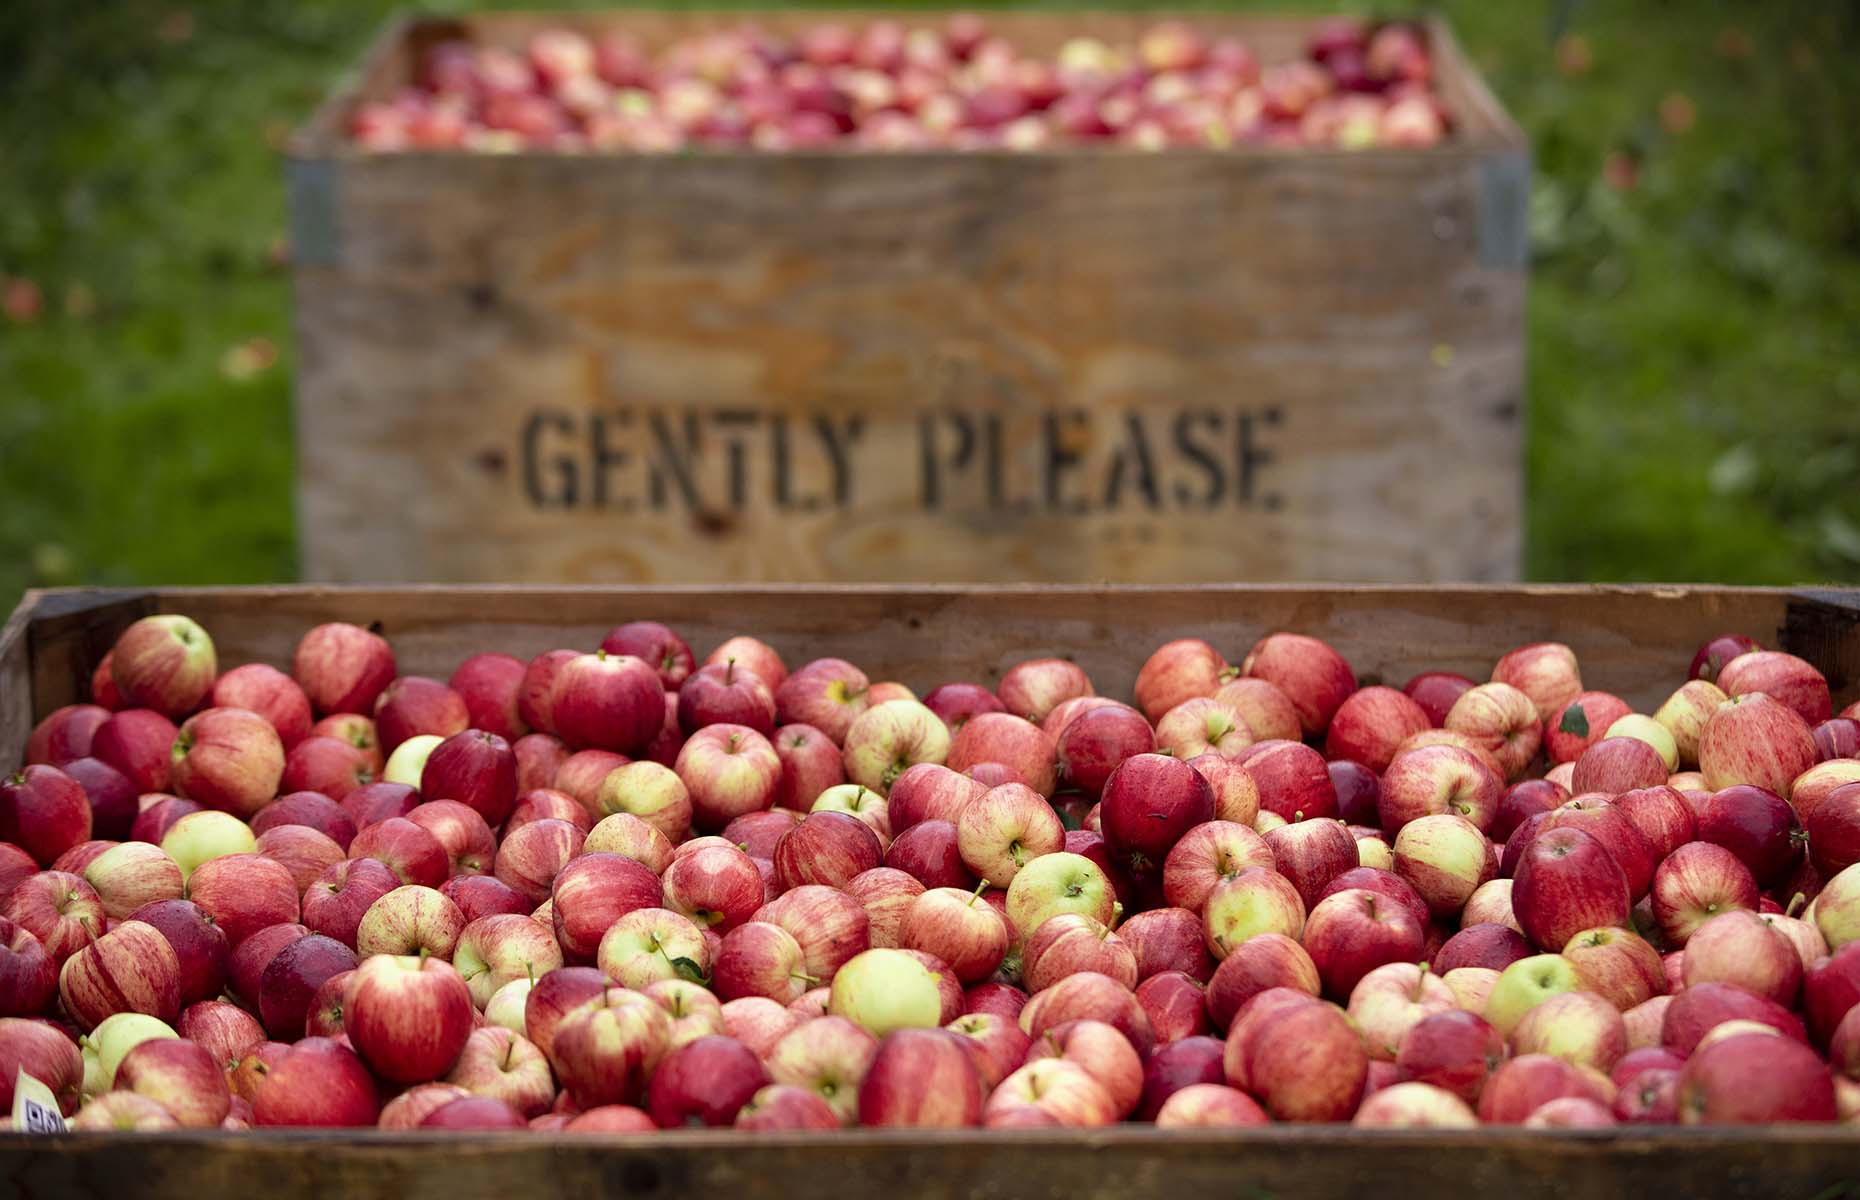 Picked red British apples in a crate (Image: Rod Kirkpatrick)